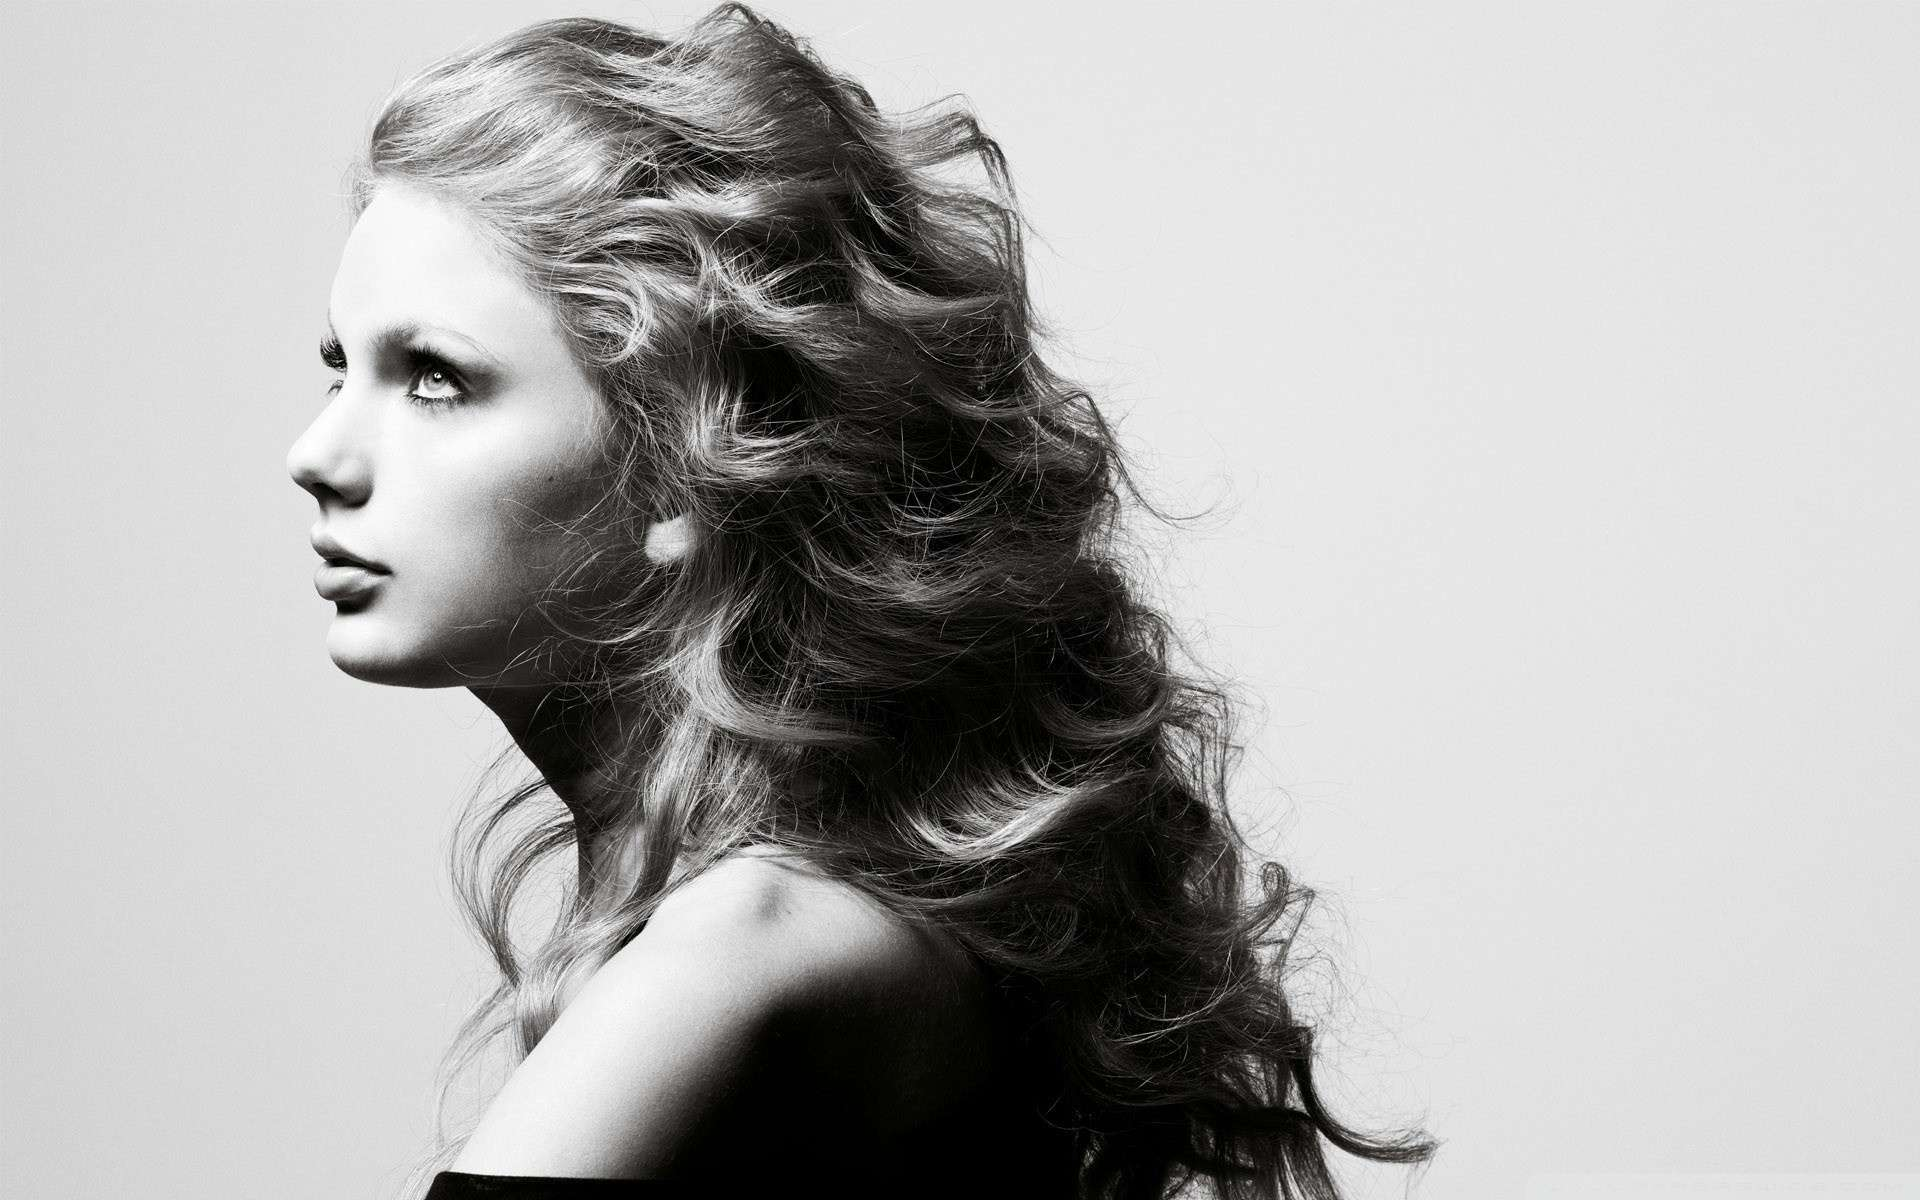 taylor-swift-in-black-and-white-picture-HD